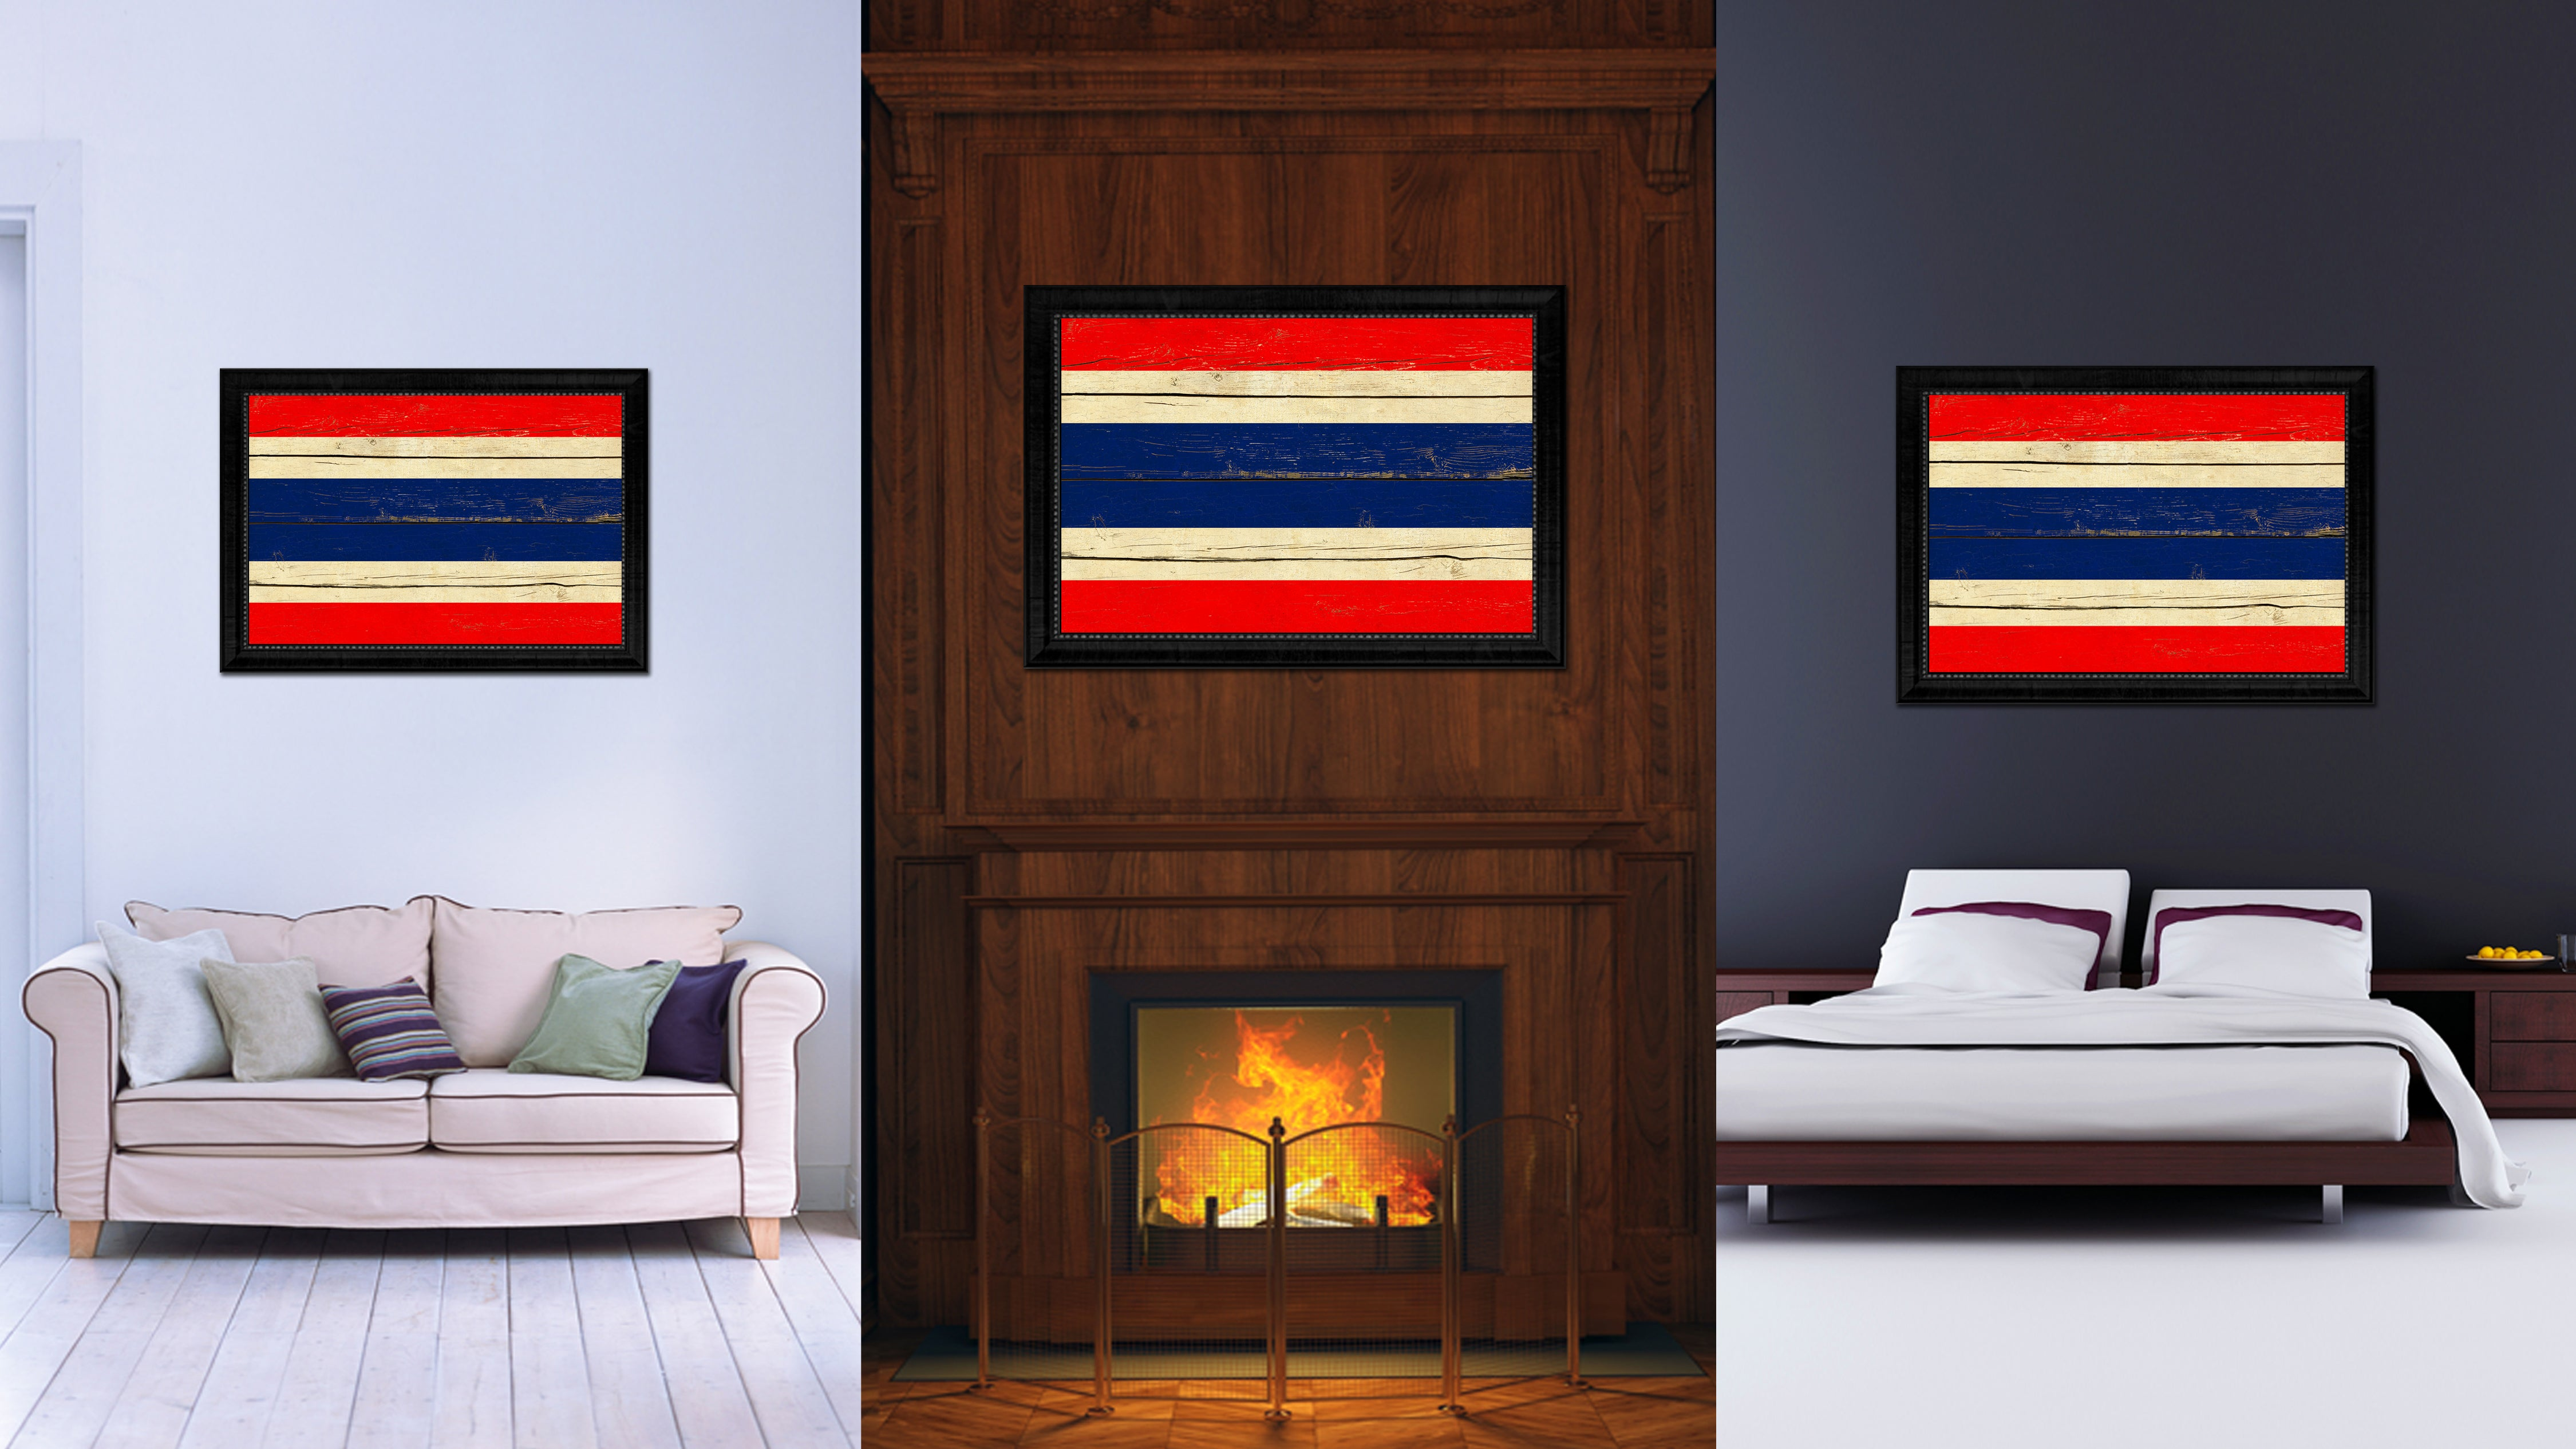 Thailand Country Flag Vintage Canvas Print with Black Picture Frame Home Decor Gifts Wall Art Decoration Artwork